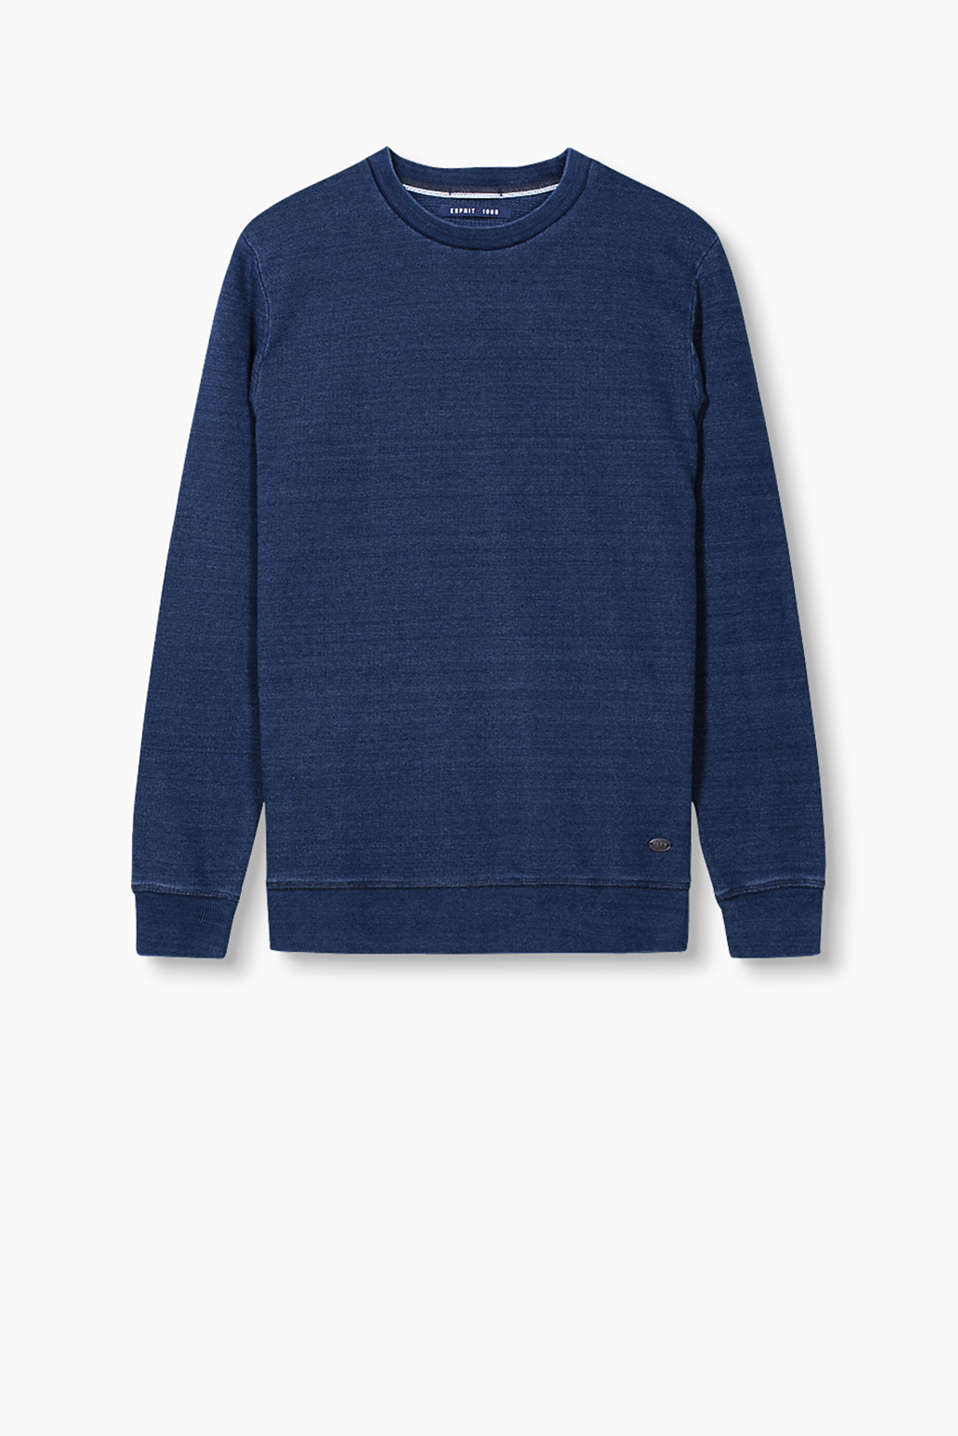 Sweatshirt in robust cotton piqué with a garment-washed finish for your urban style